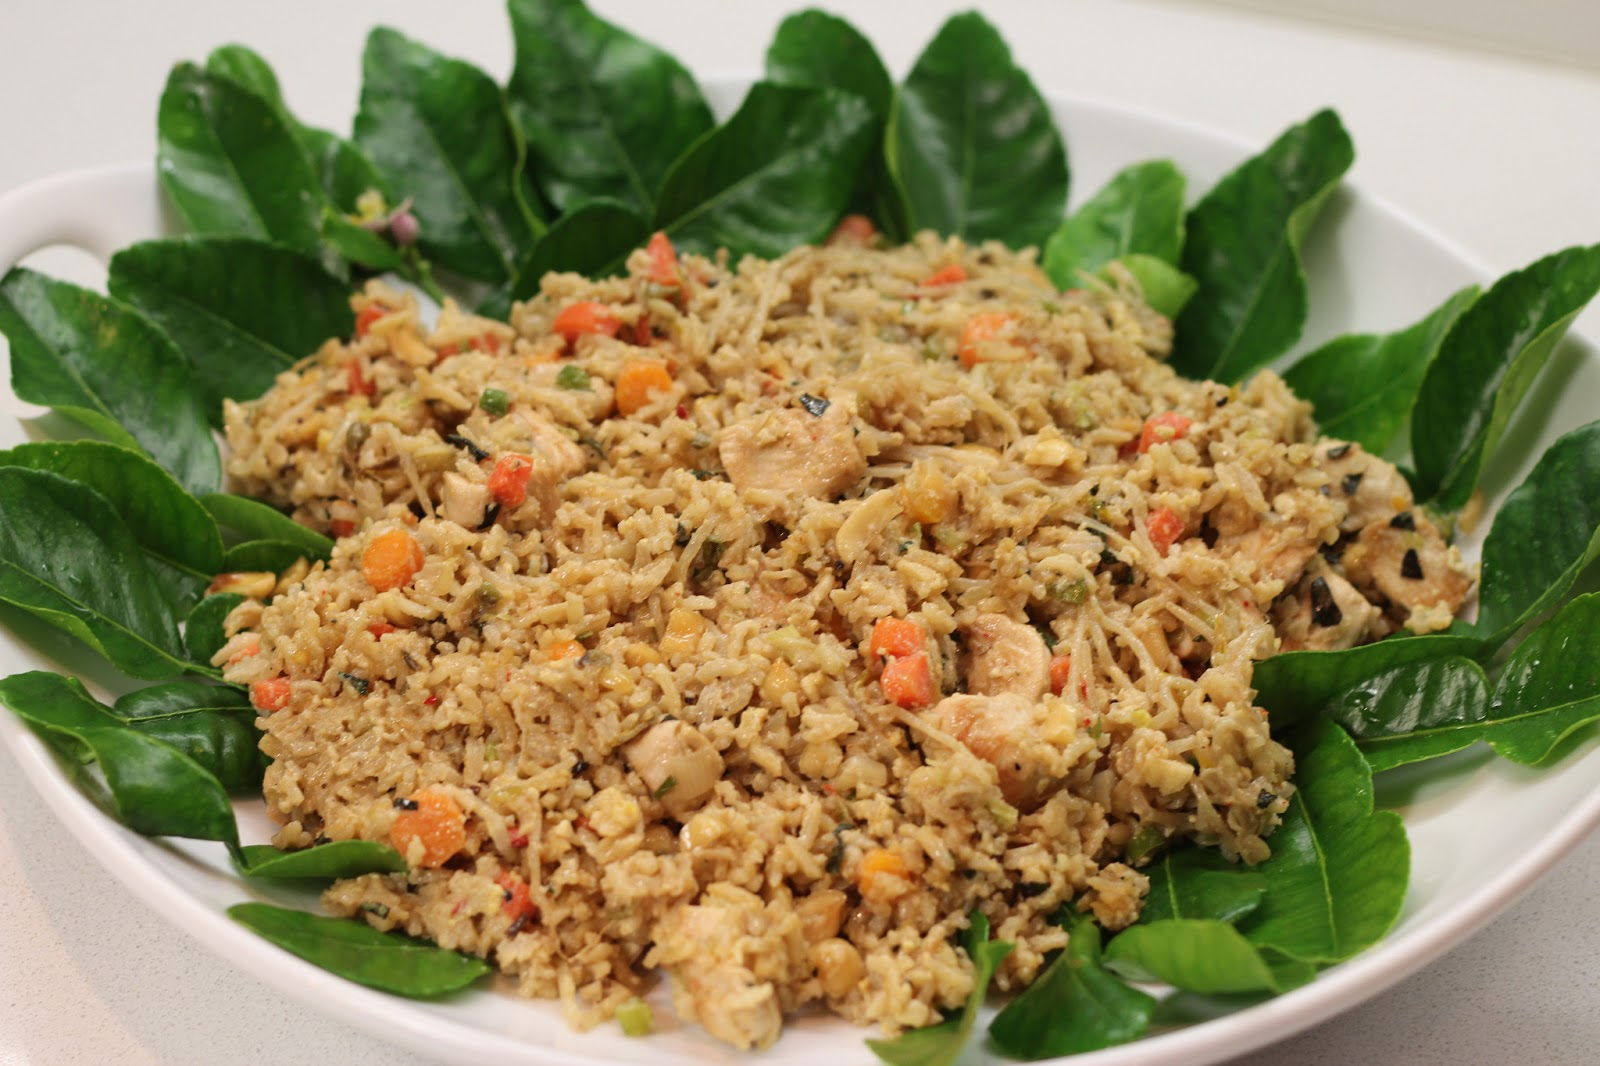 ... Kitchen: SPICY FRIED RICE WITH BEAN SPROUTS, CHICKEN, AND PEANUTS